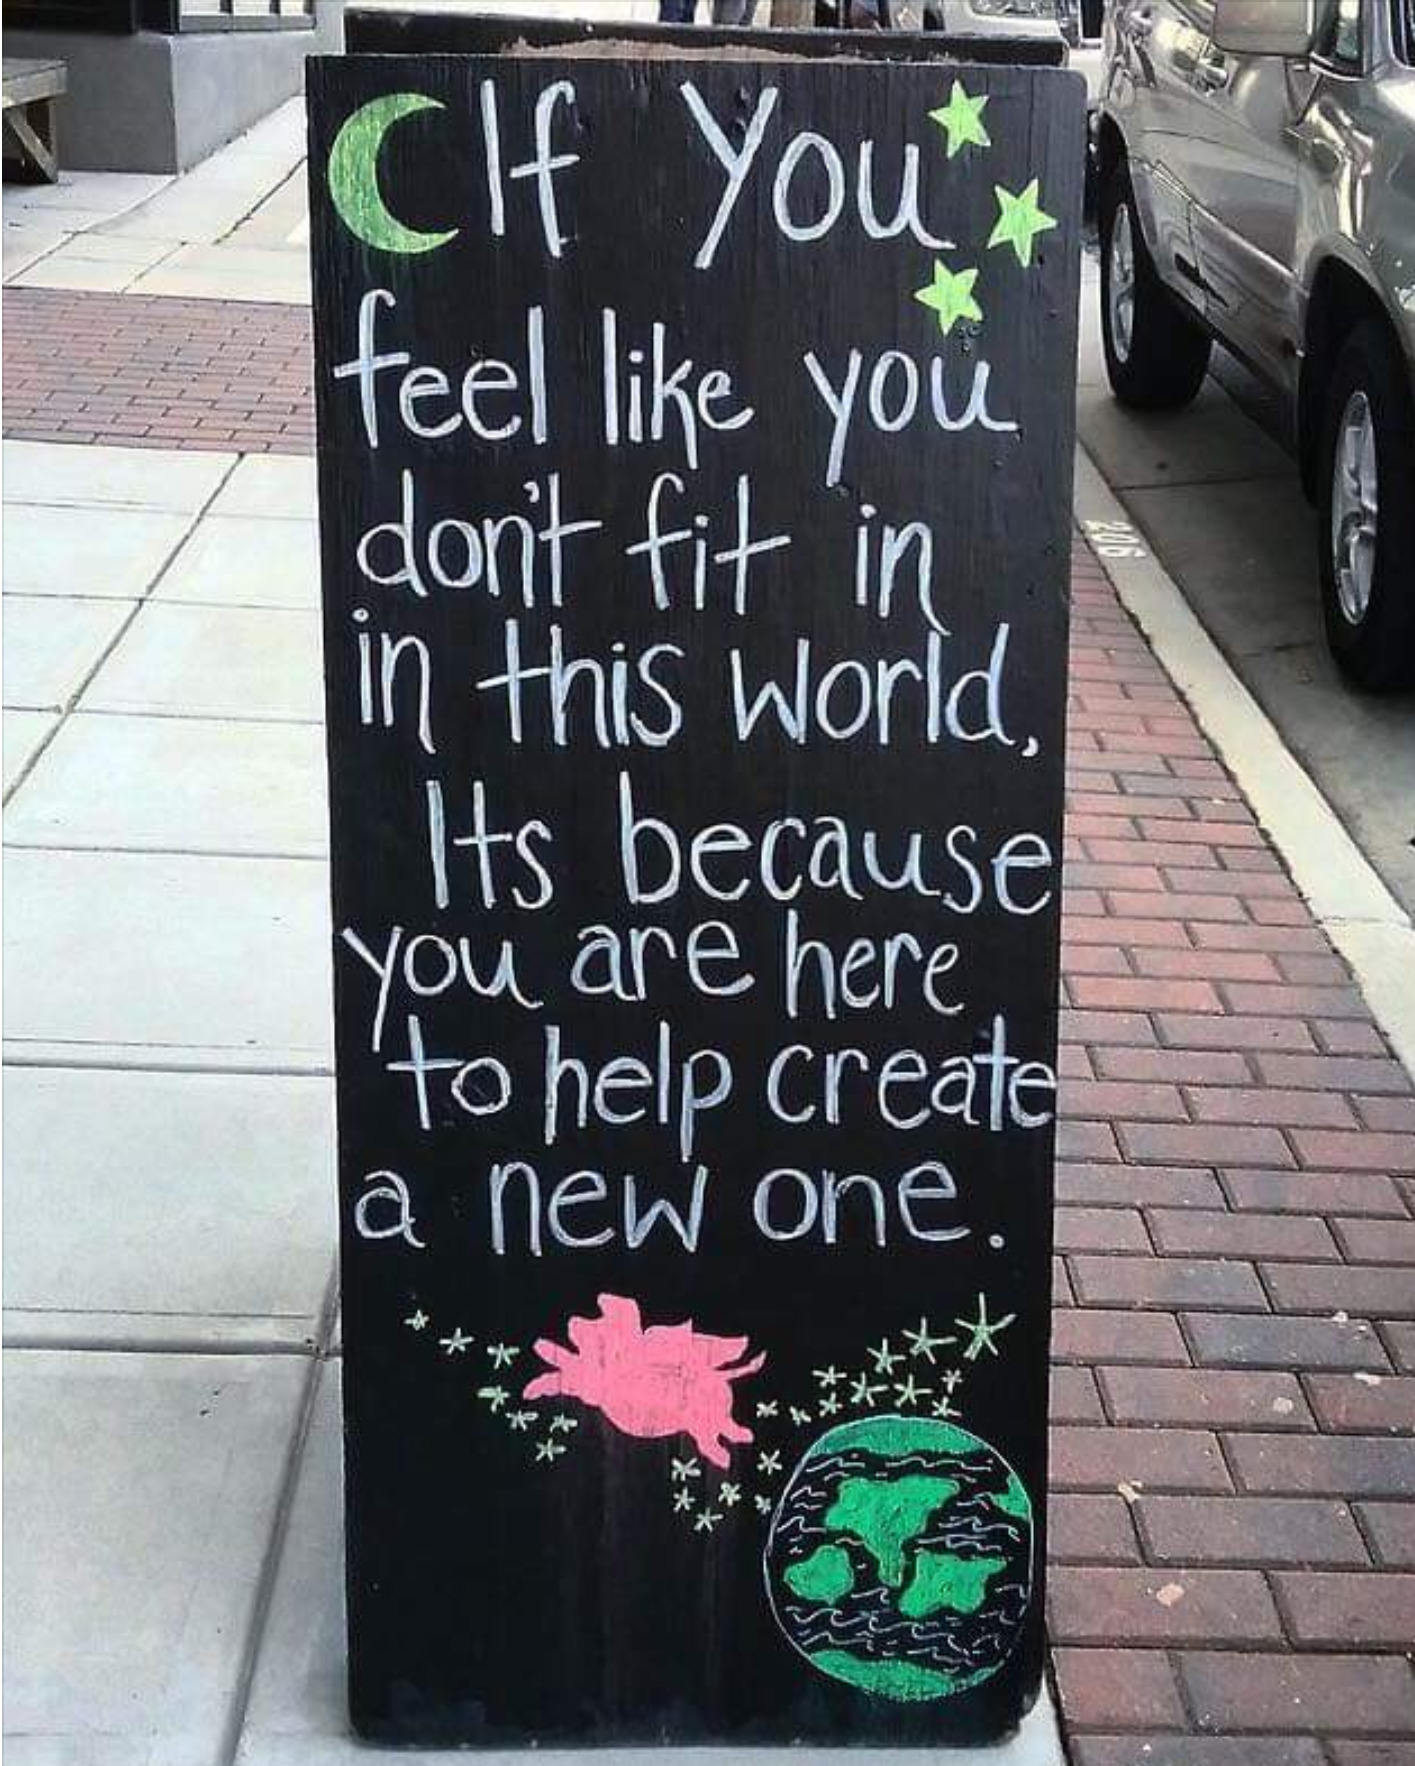 [Image] Create the change